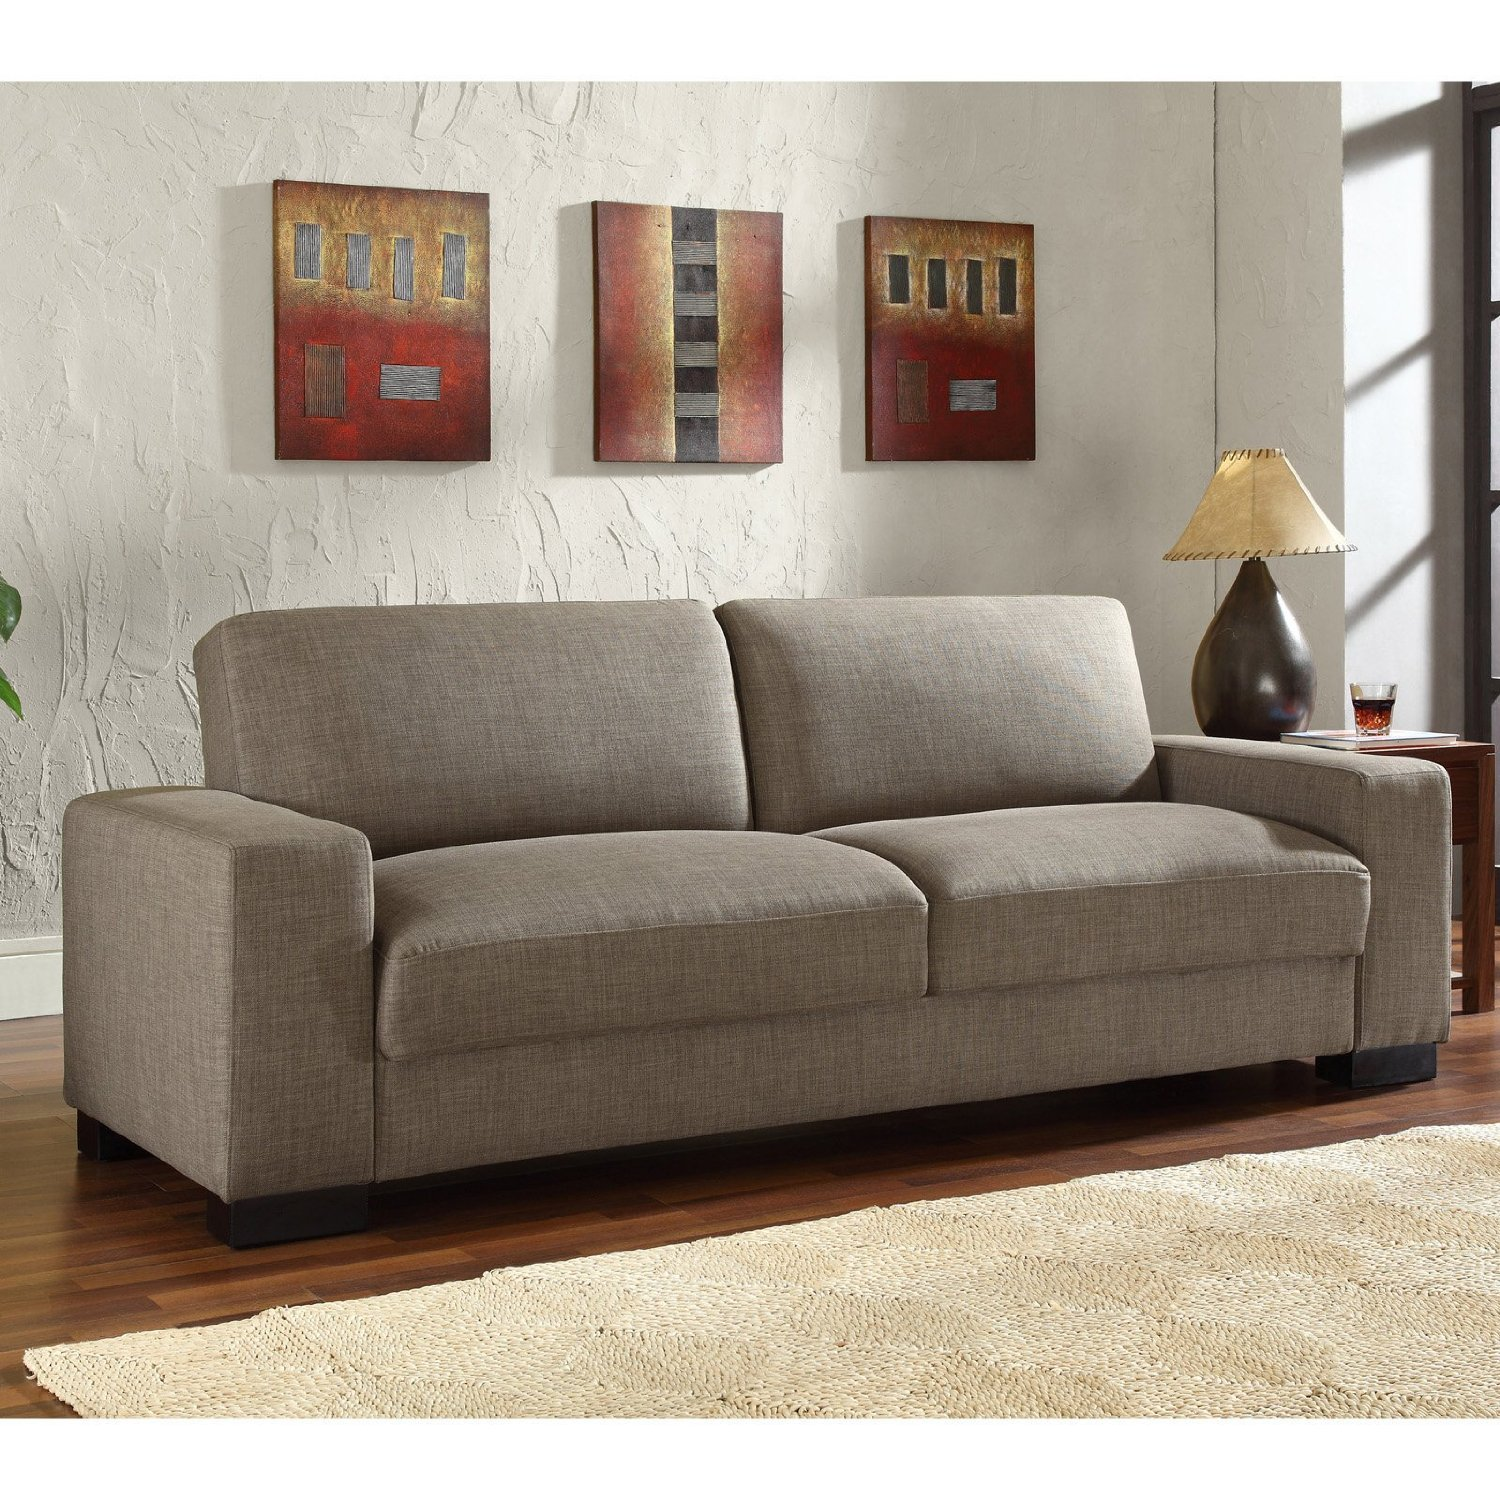 Convertible sofa leather convertible sofa bed for Divan convertible